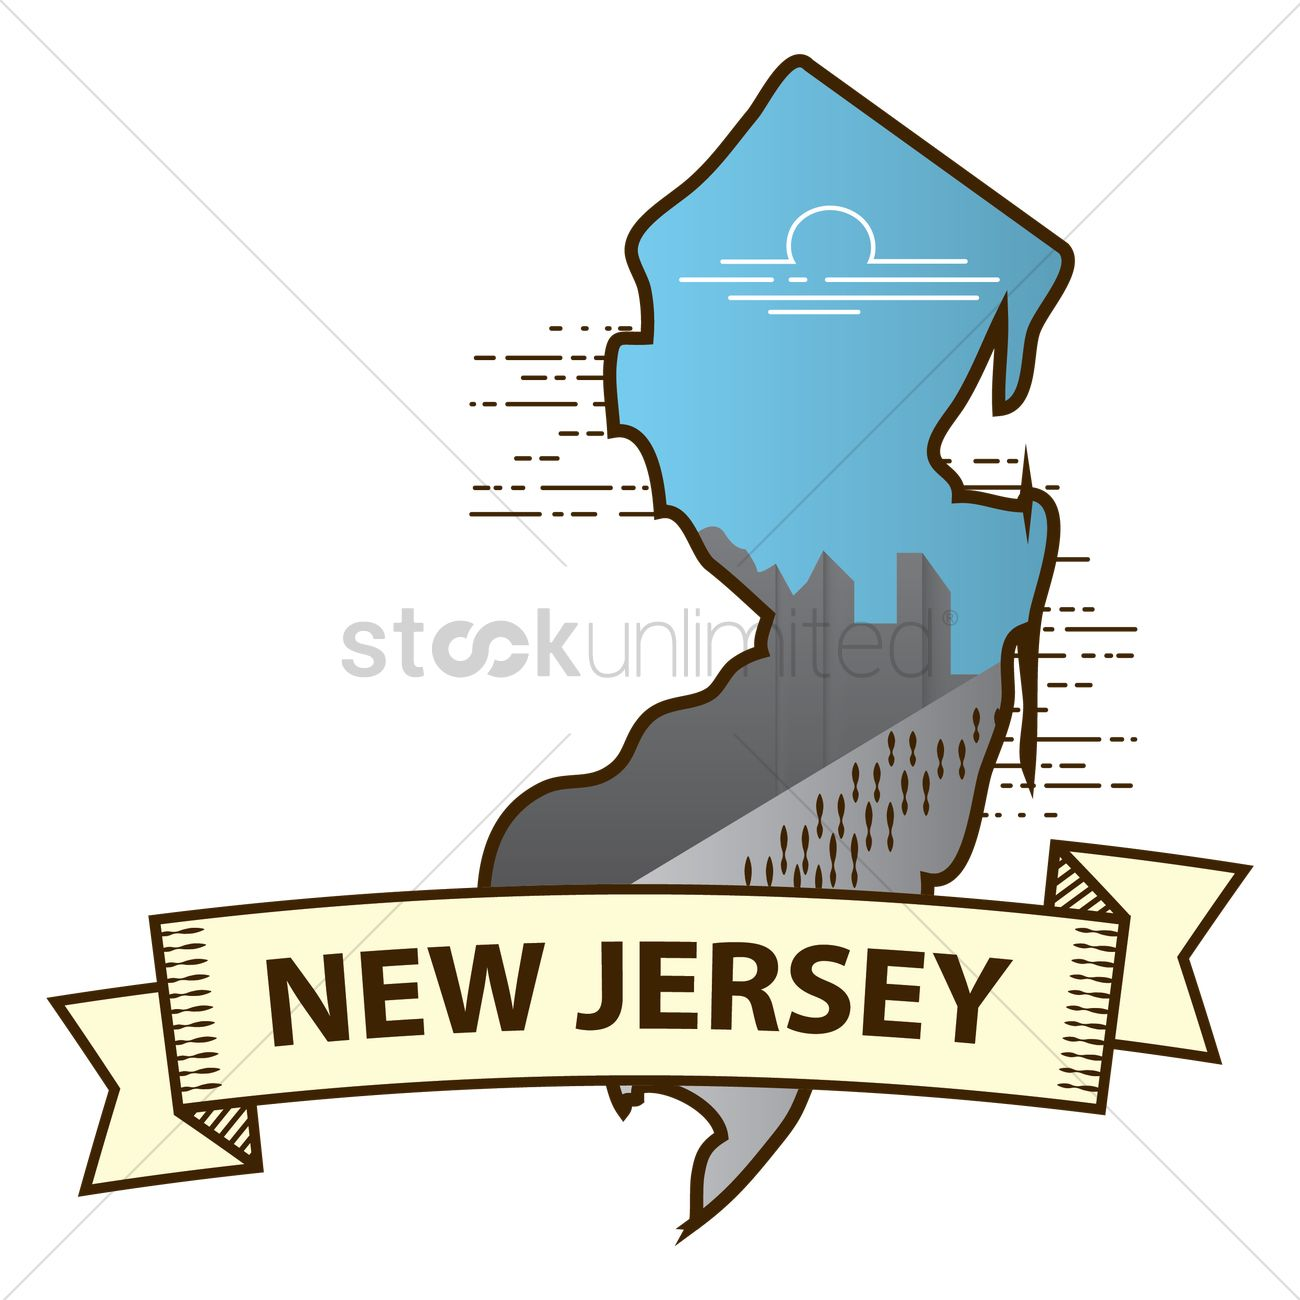 New jersey state map Vector Image - 1564474 | StockUnlimited